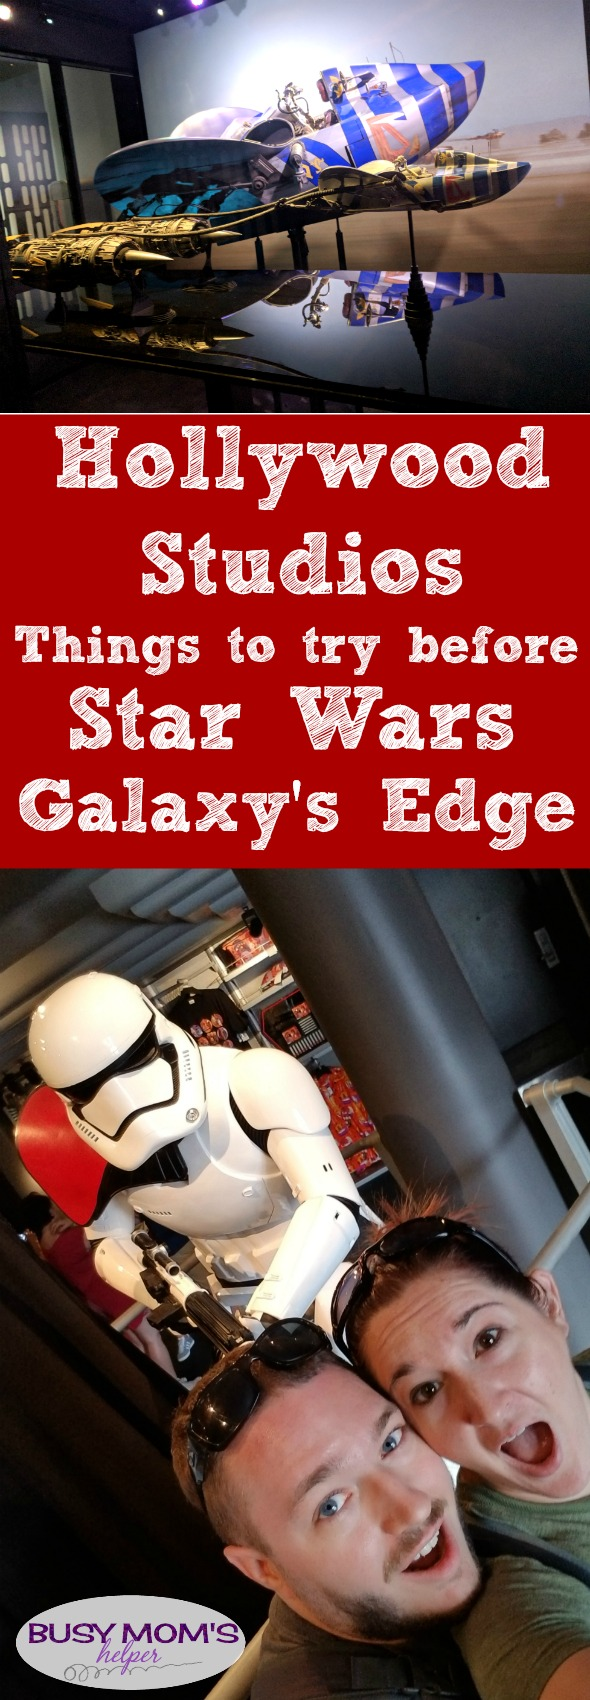 Hollywood Studios Things to Try Before Star Wars Galaxy's Edge Opens #waltdisneyworld #starwars #hollywoodstudios